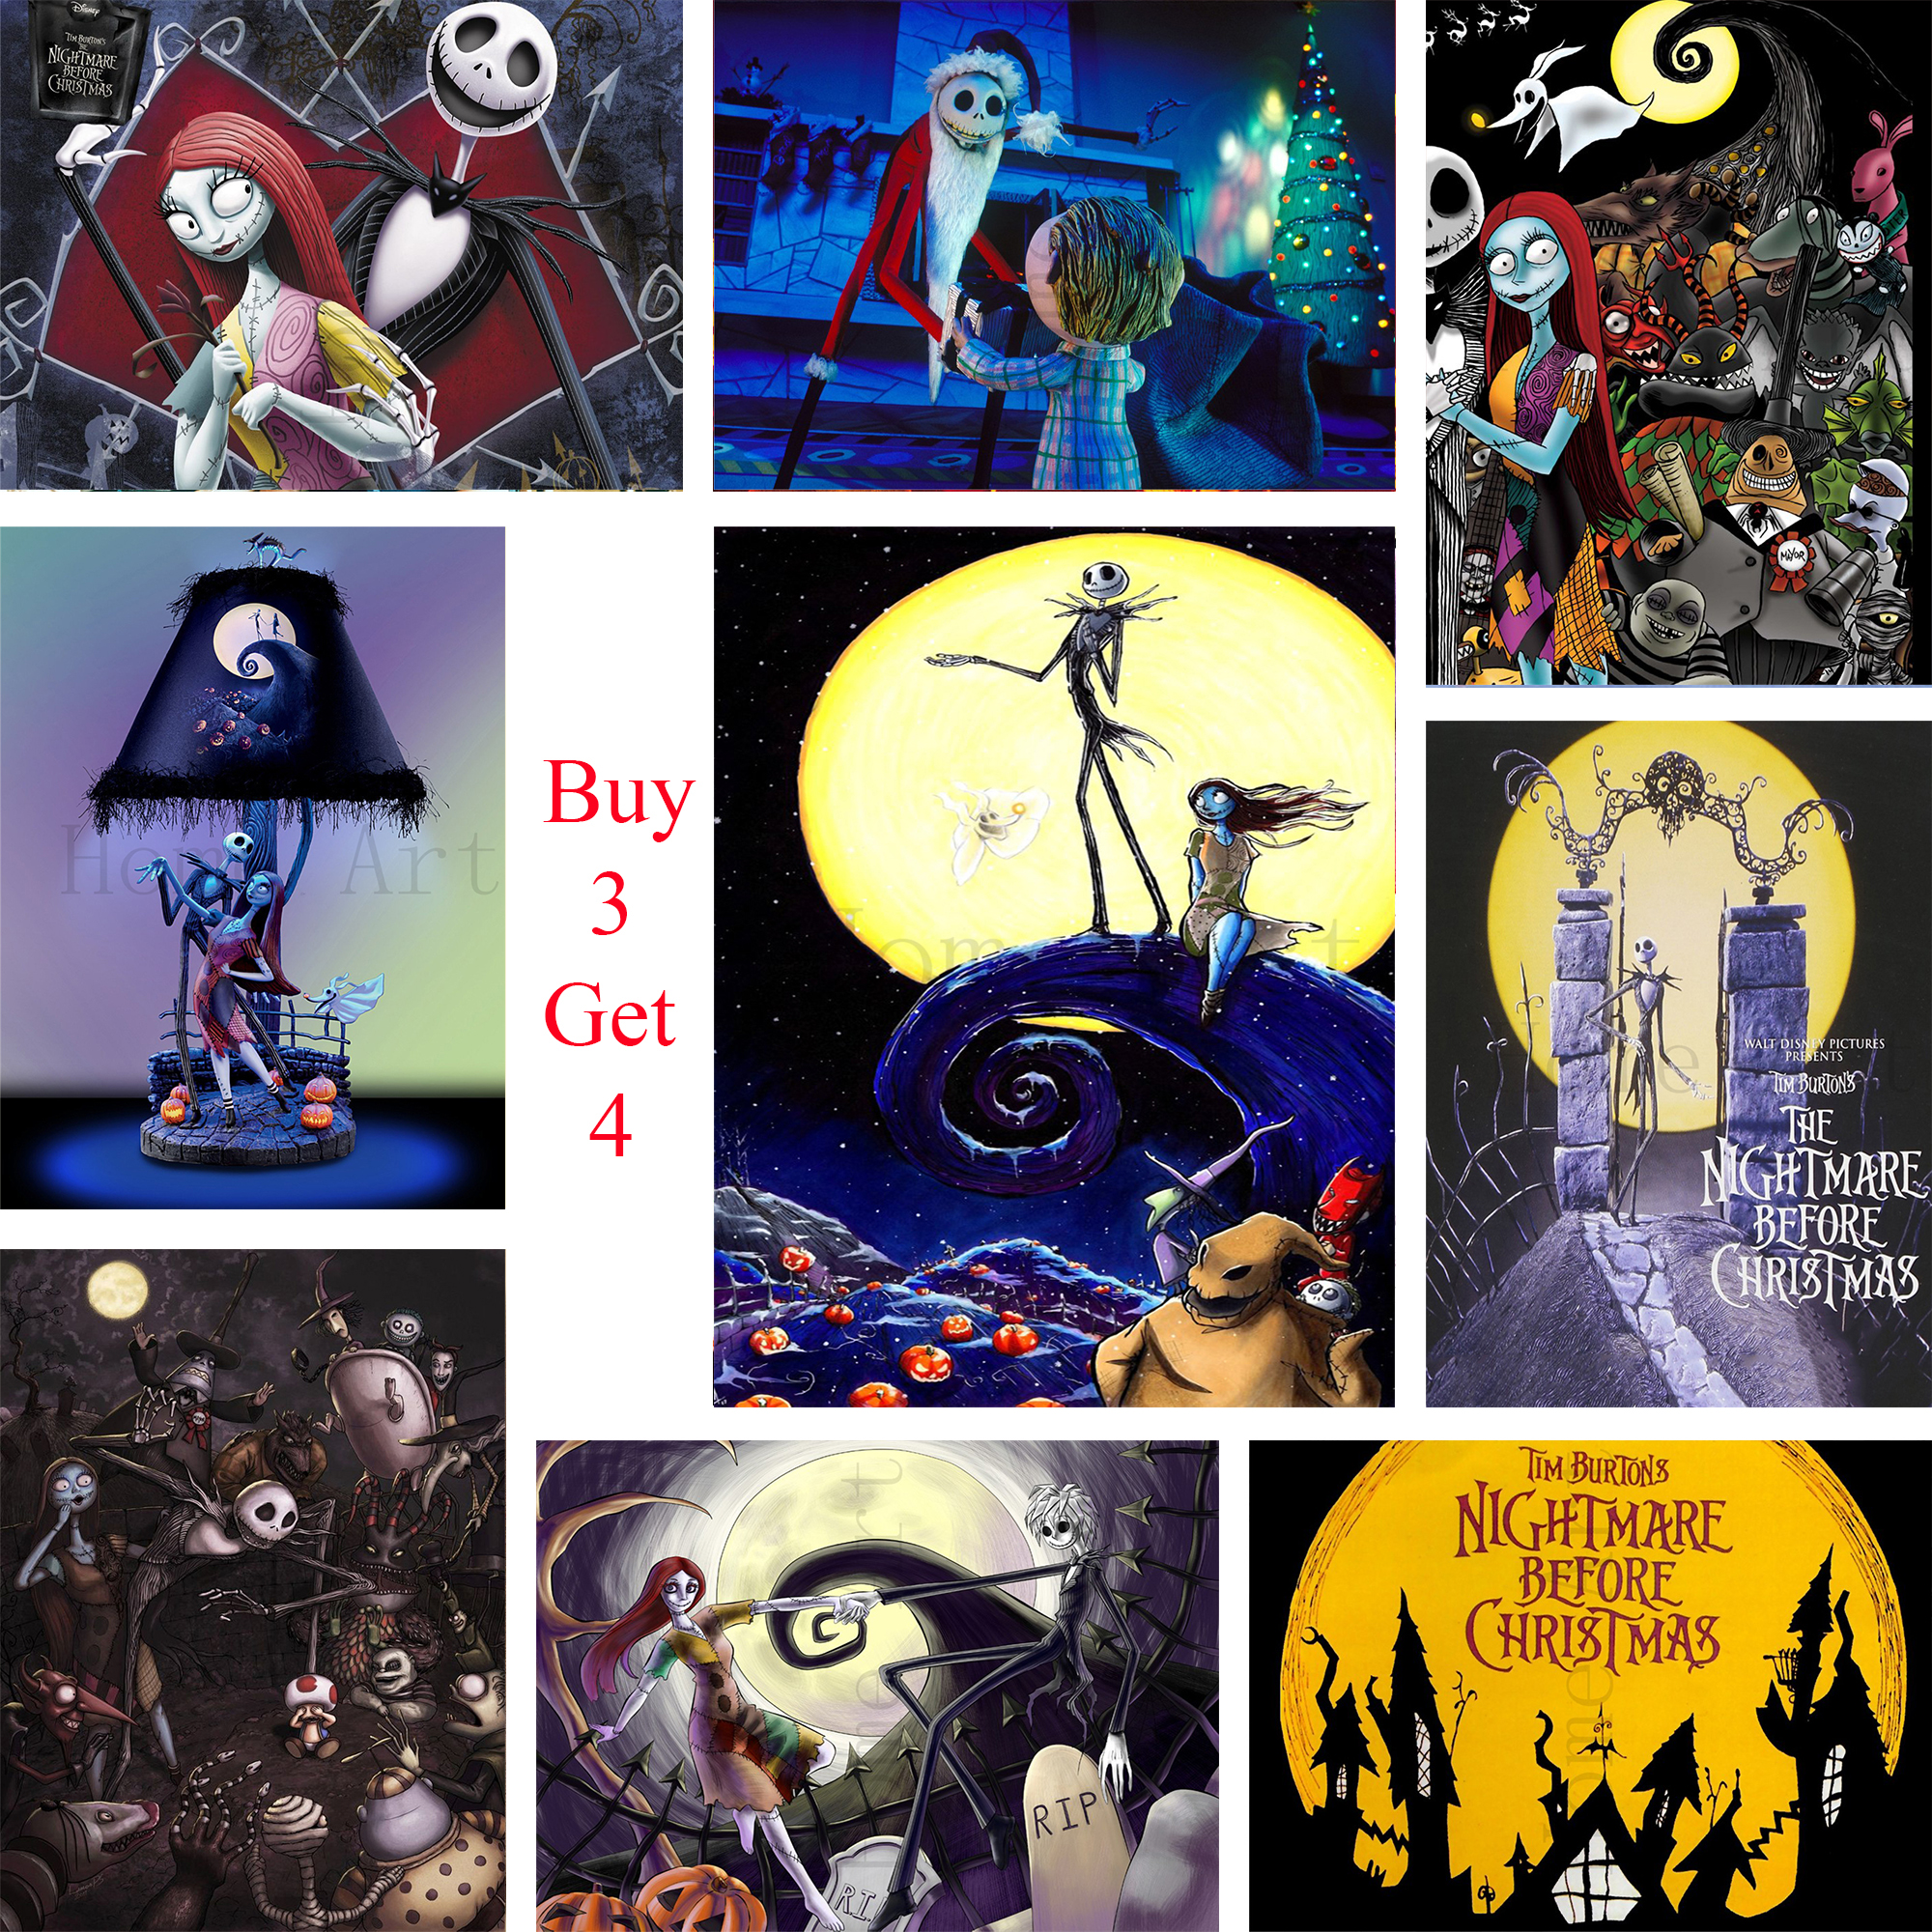 The Nightmare Before Christmas Poster Clear Image Wall Stickers Home ...